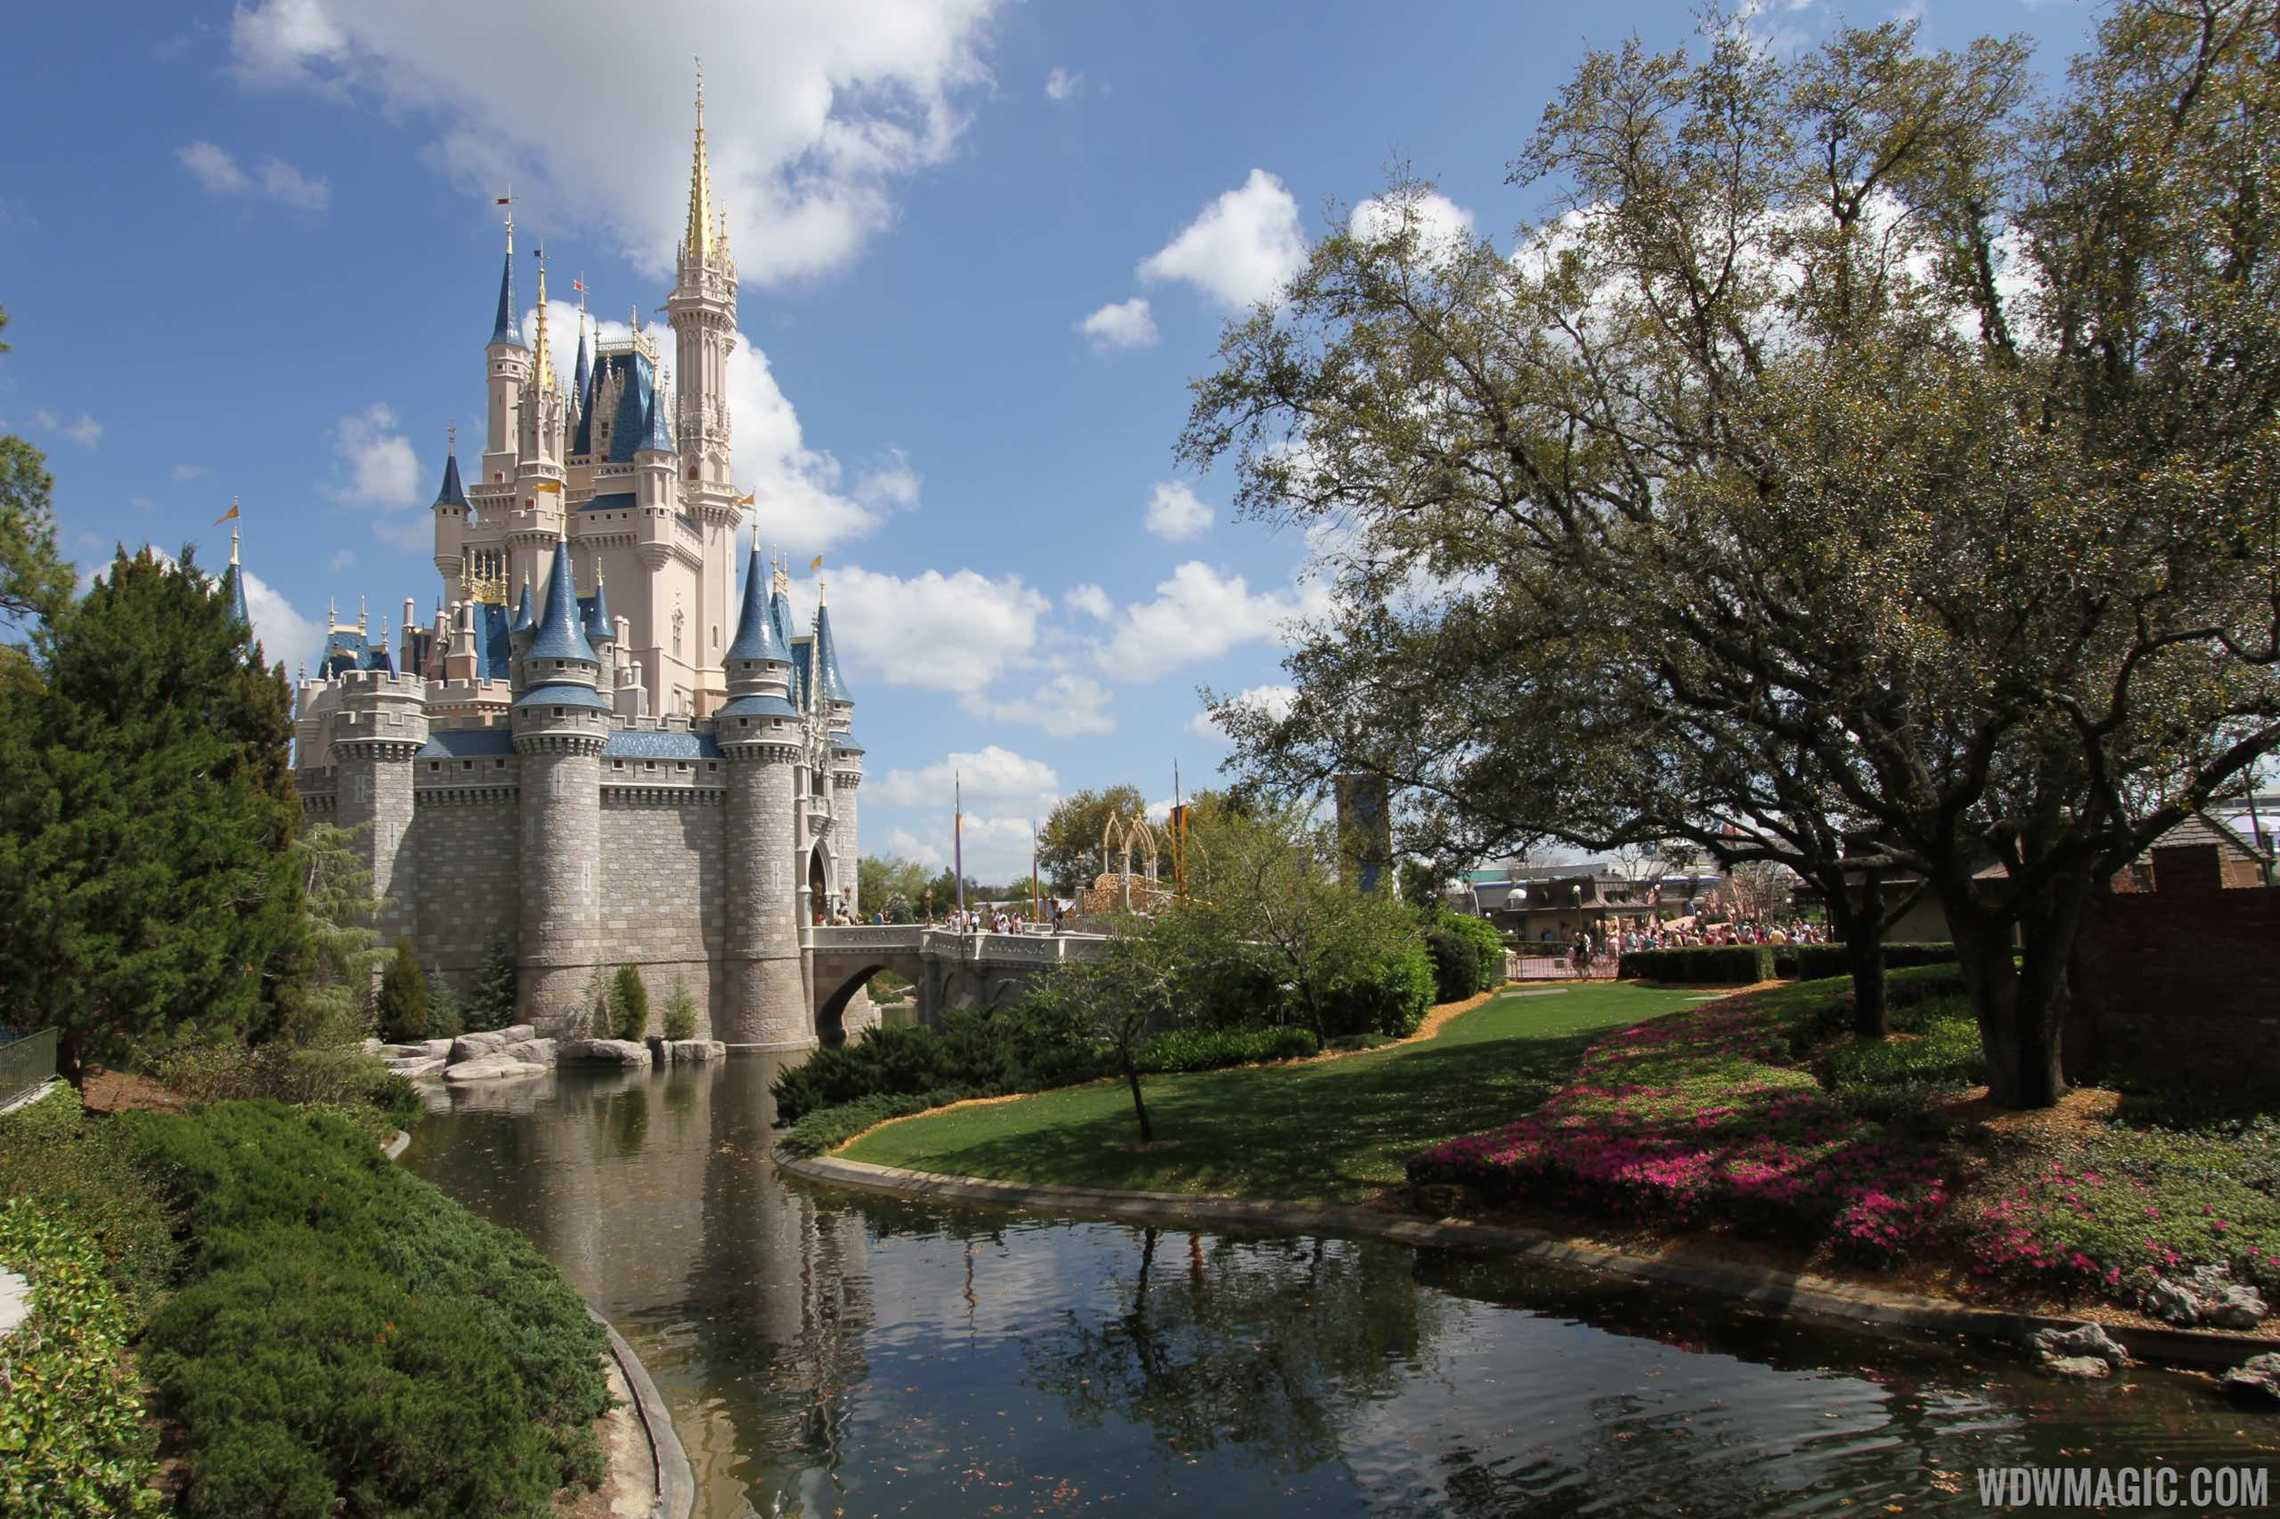 Magic Kingdom is valued at $437 million dollars